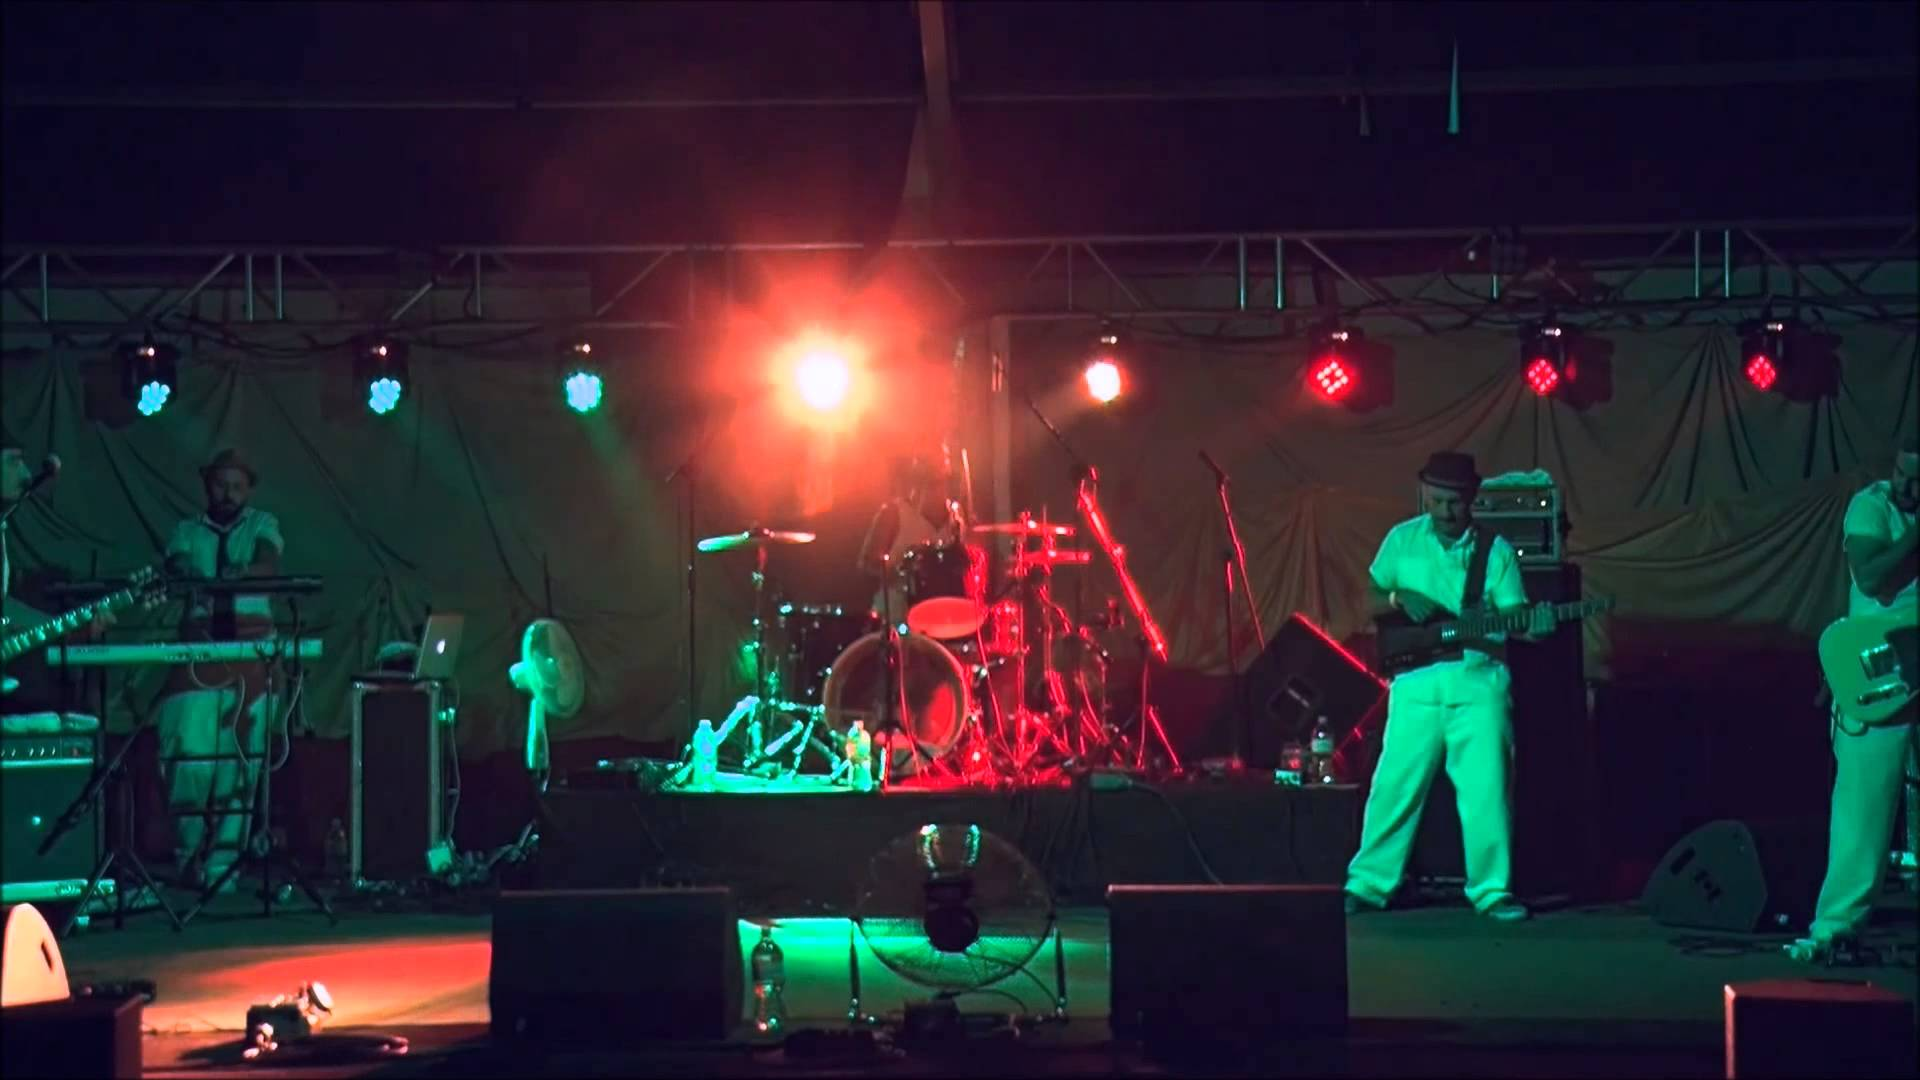 Train To Roots - Africans @ Reggae Na Piaskach 2015 [7/18/2015]